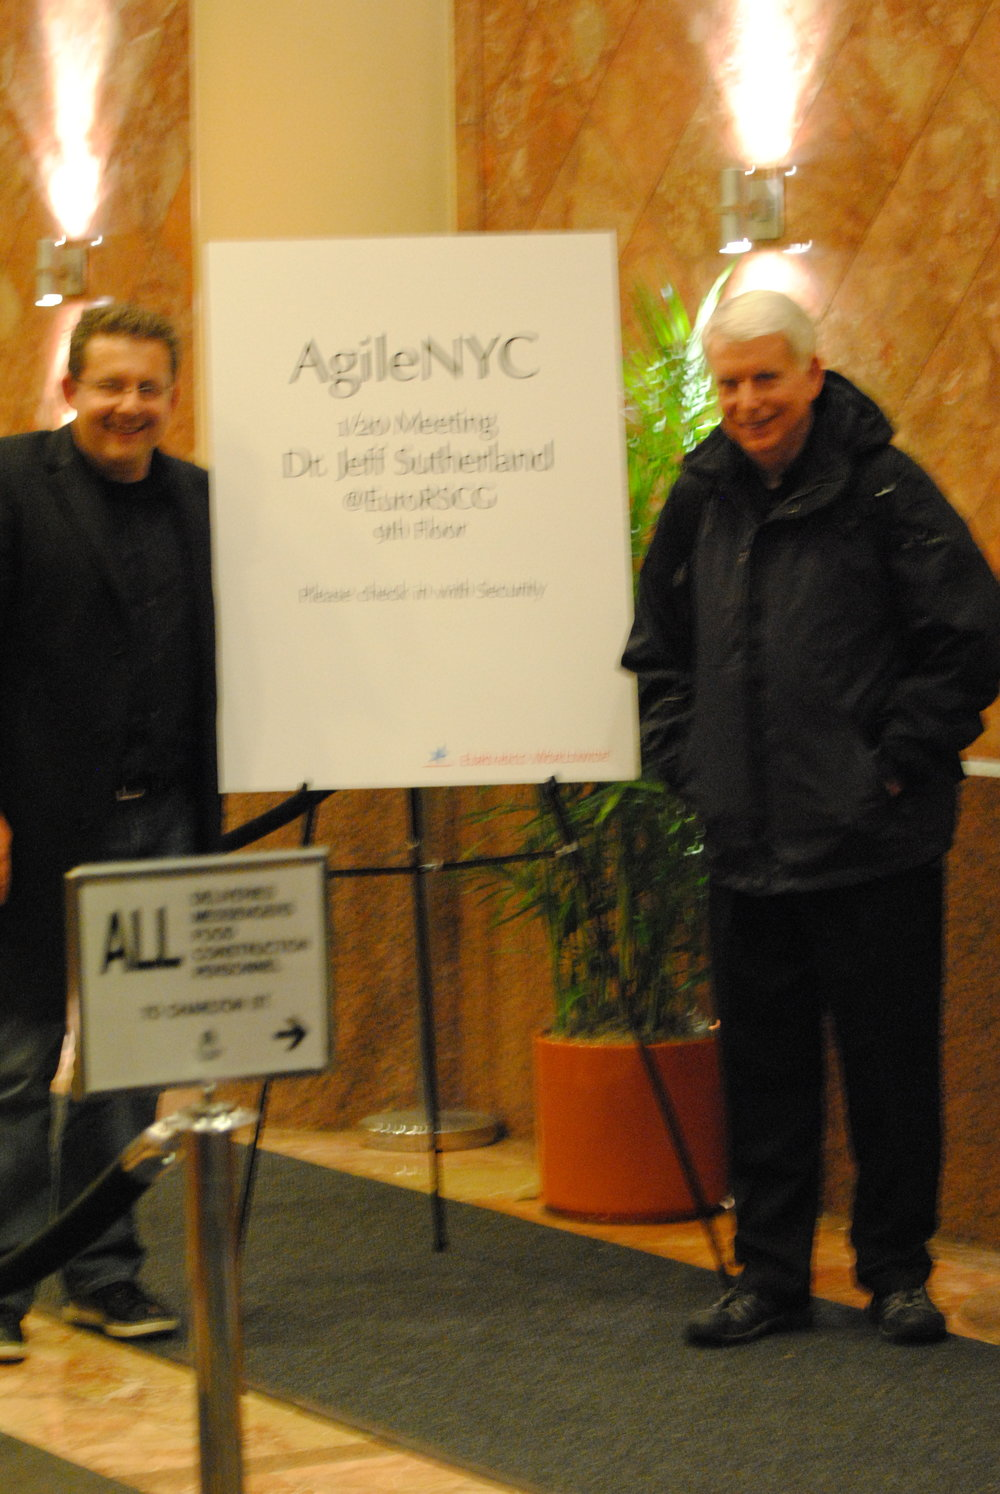 Joe Krebs with Jeff Sutherland in NYC in 2011